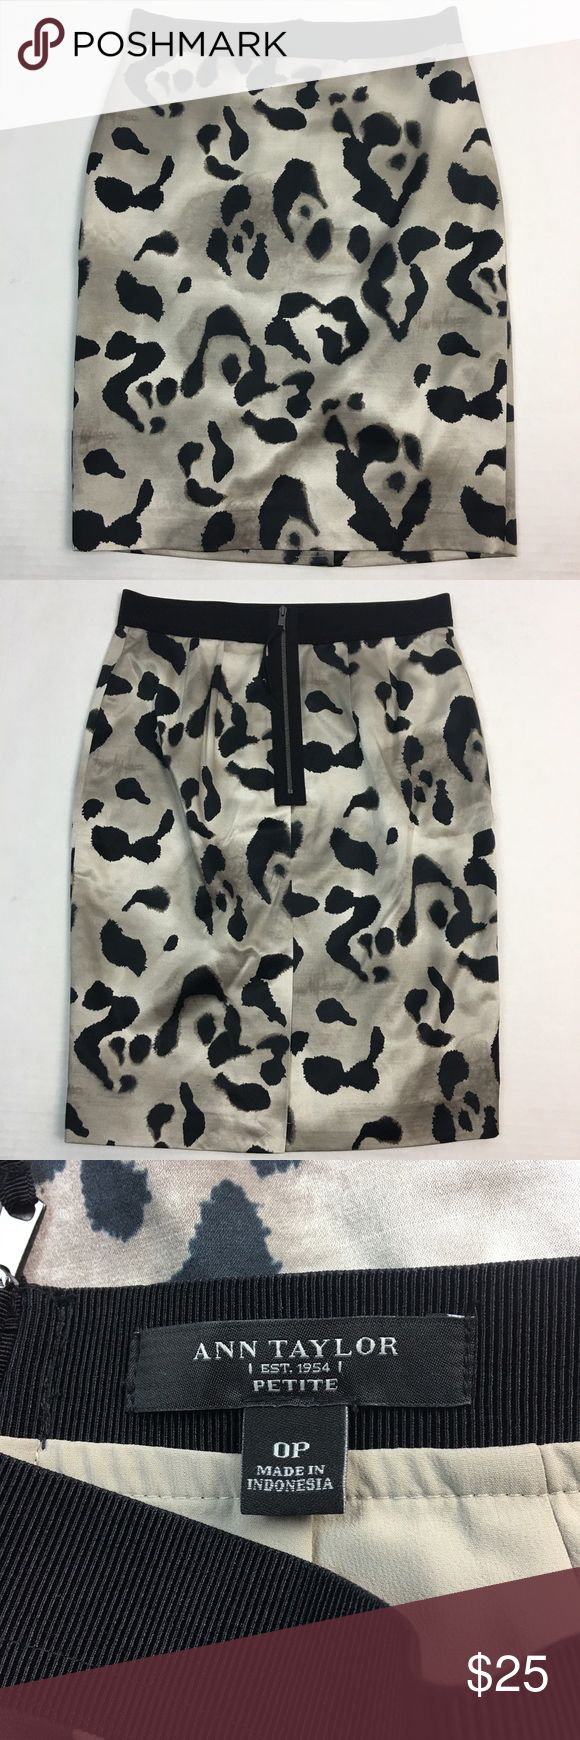 "Ann Taylor Petite Skirt Size 0P Brand:  Ann Taylor Petite Size:  0P Condition: Gently Worn - No Flaws Material:  Shell - 60% Cotton, 35% Silk, 5% Spandex; Lining - 96% Polyester, 4% Spandex Waist: 26"" (13 x 2) Length: 20.5"" Care:   Dry Clean Recommended Extra Information:   Back Zipper; Slit back Ann Taylor Skirts Pencil"